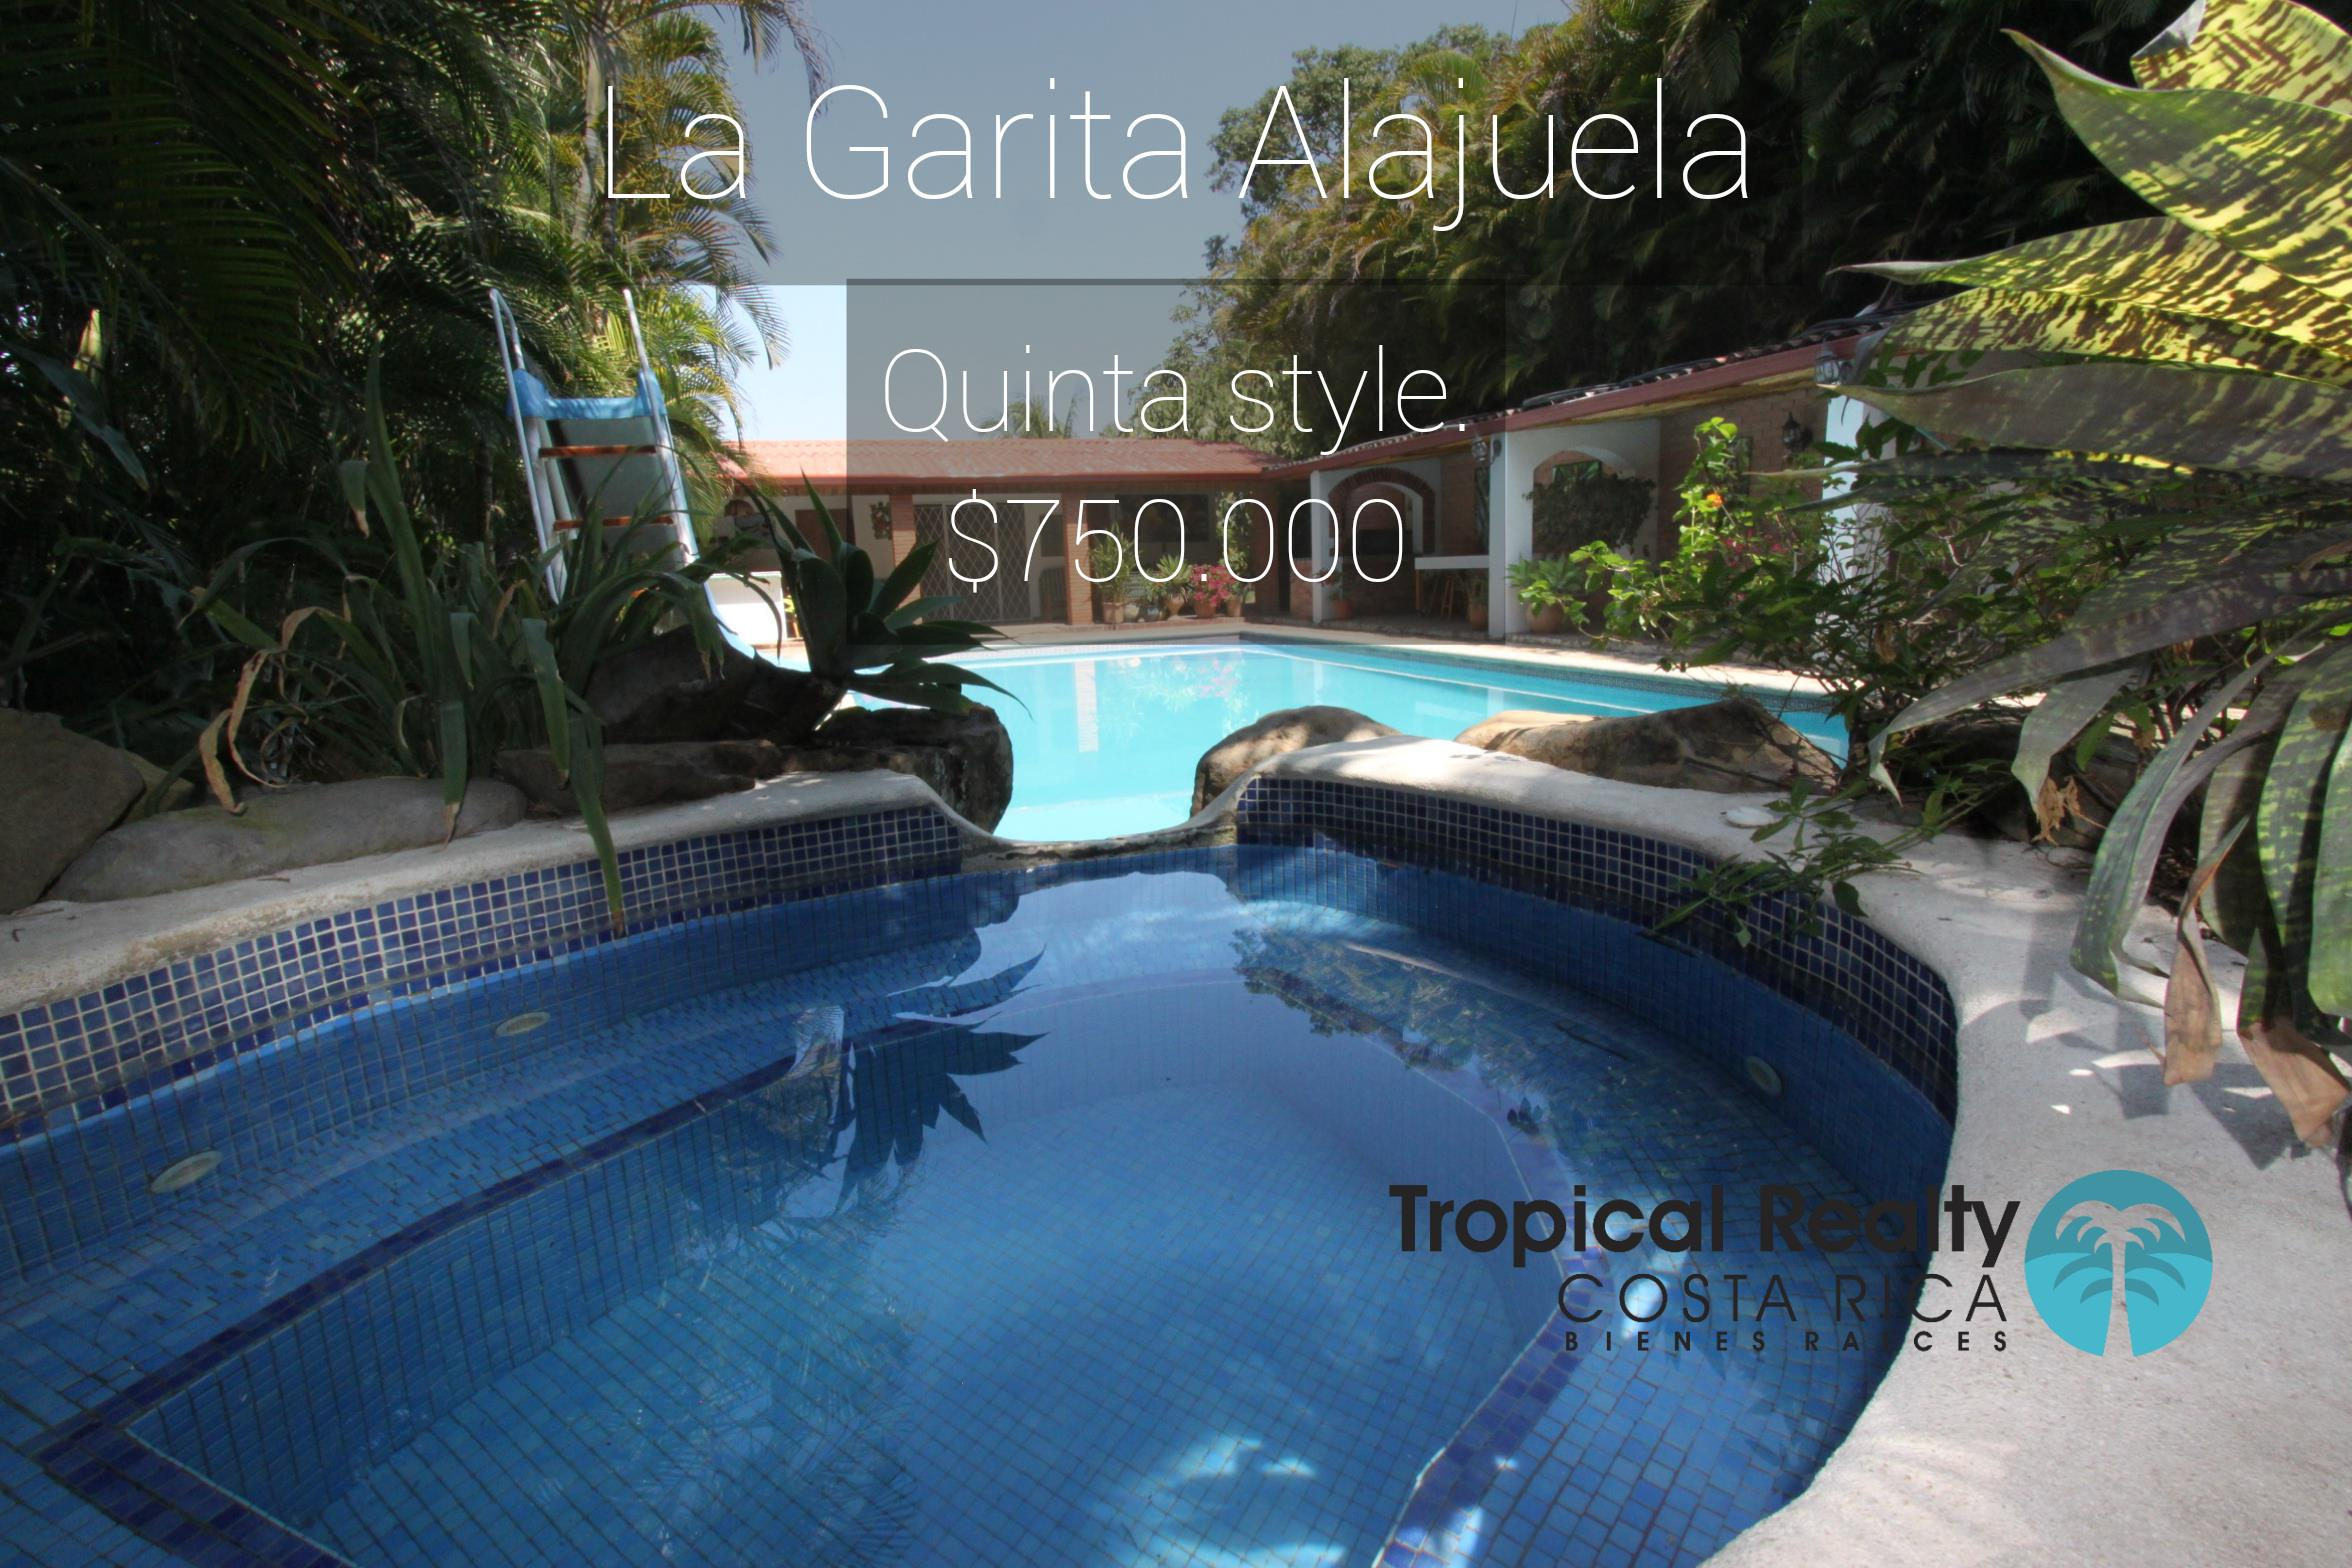 La Garita Alajuela home for sale